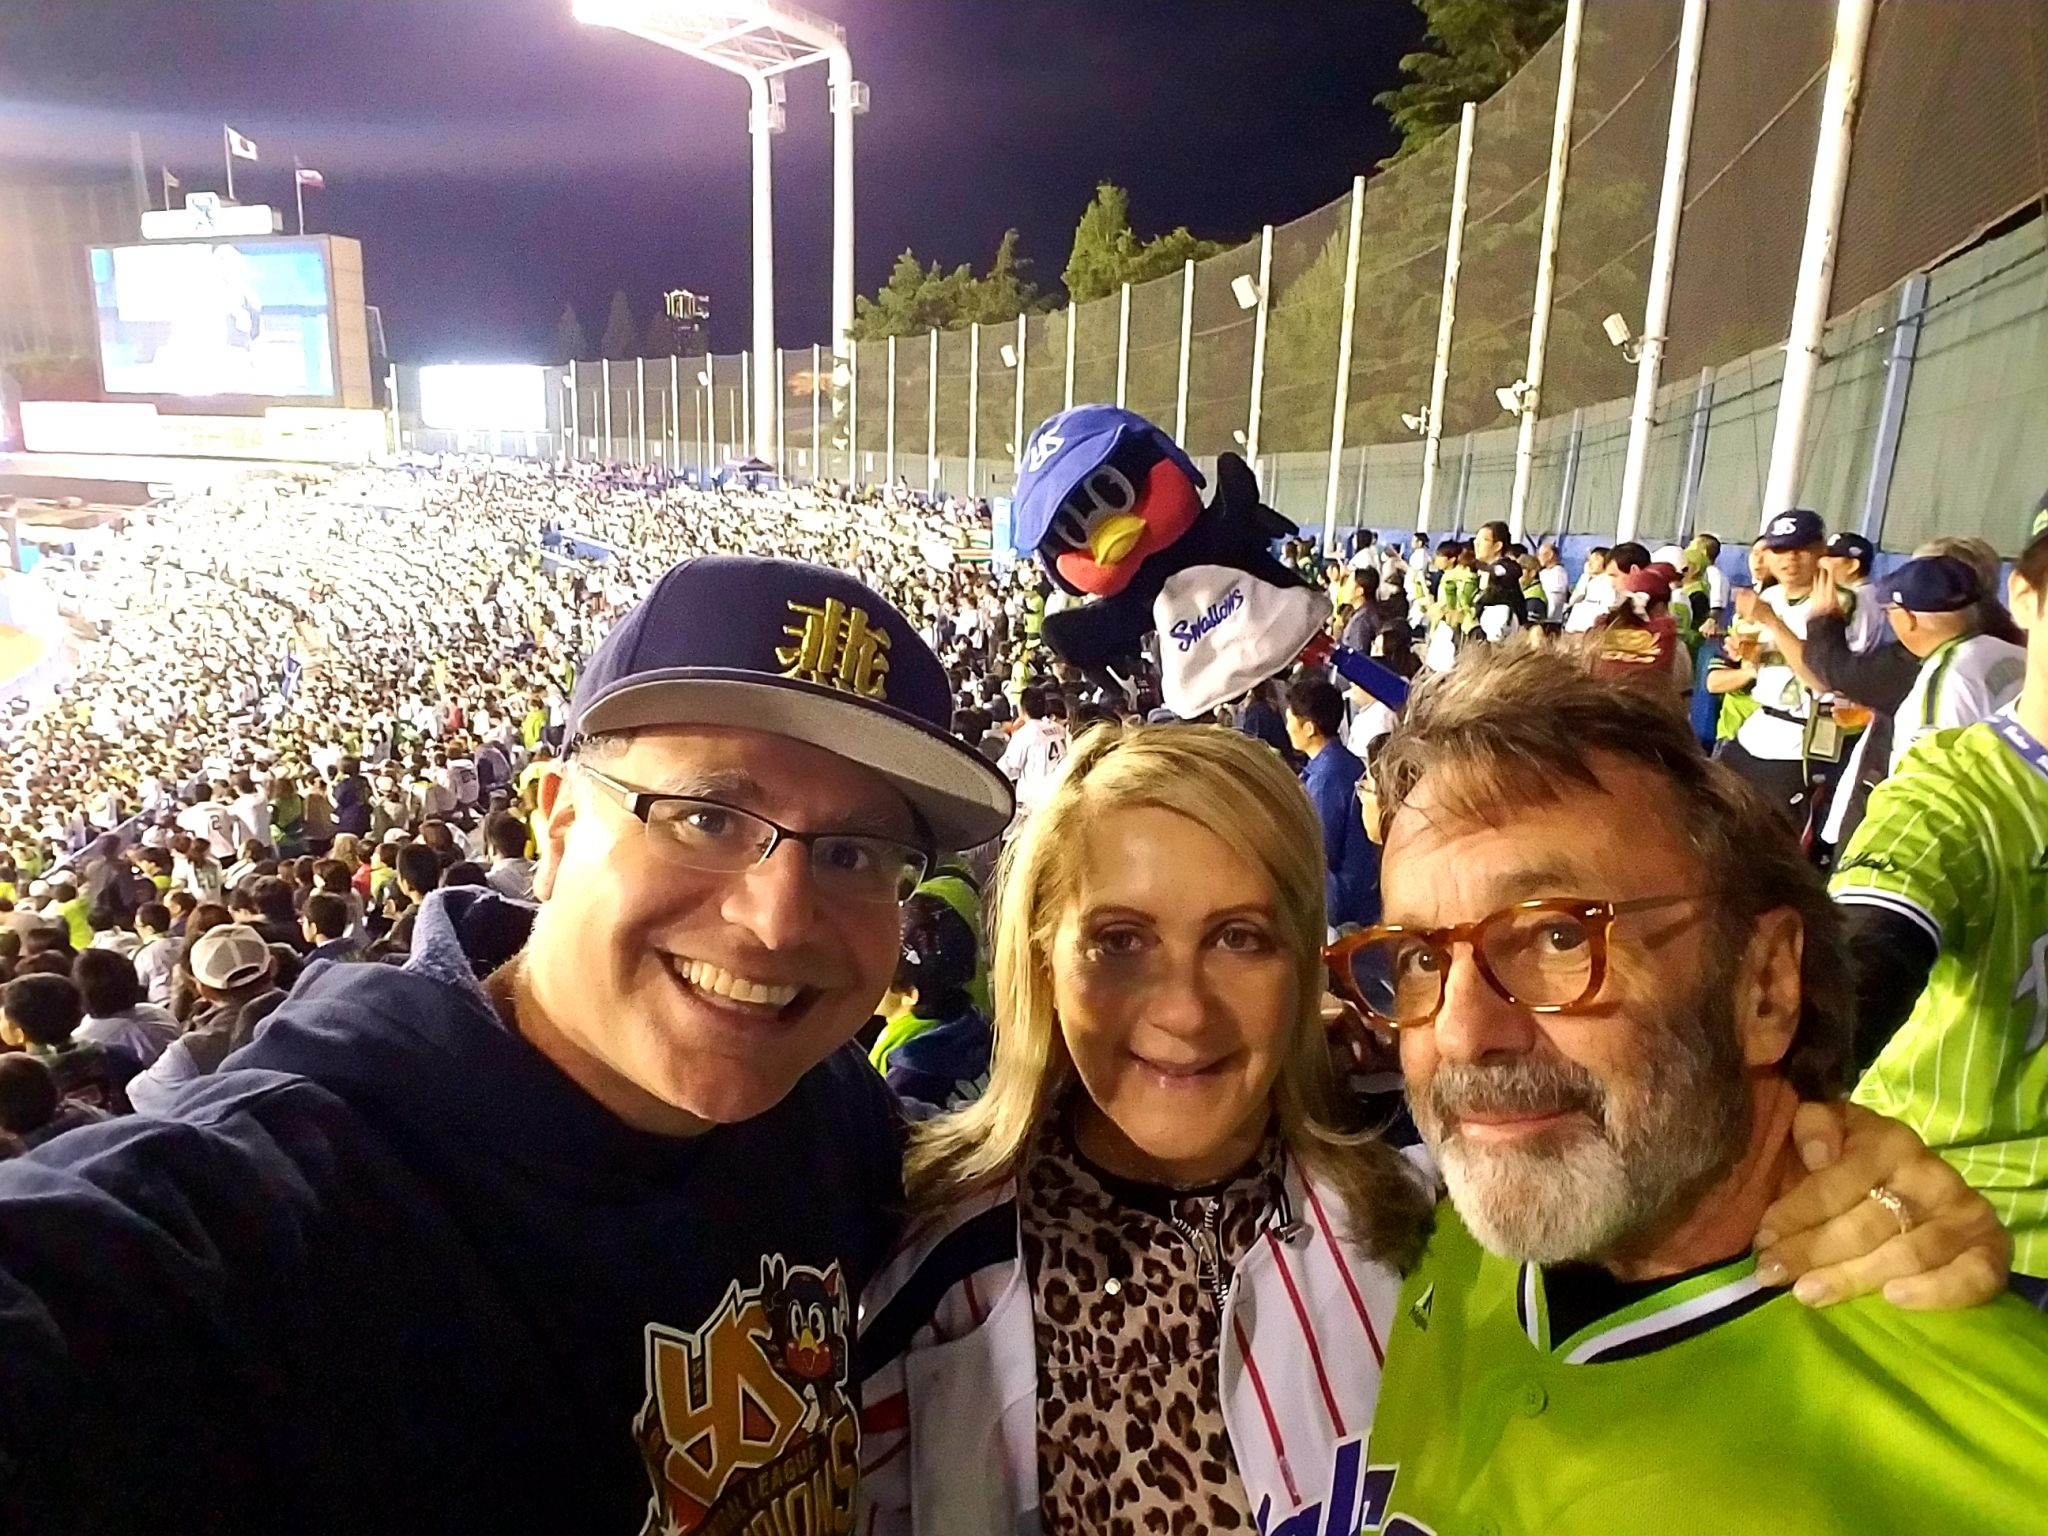 Mac, Stuart Zaro and Keri Zaro at Meiji Jingu stadium